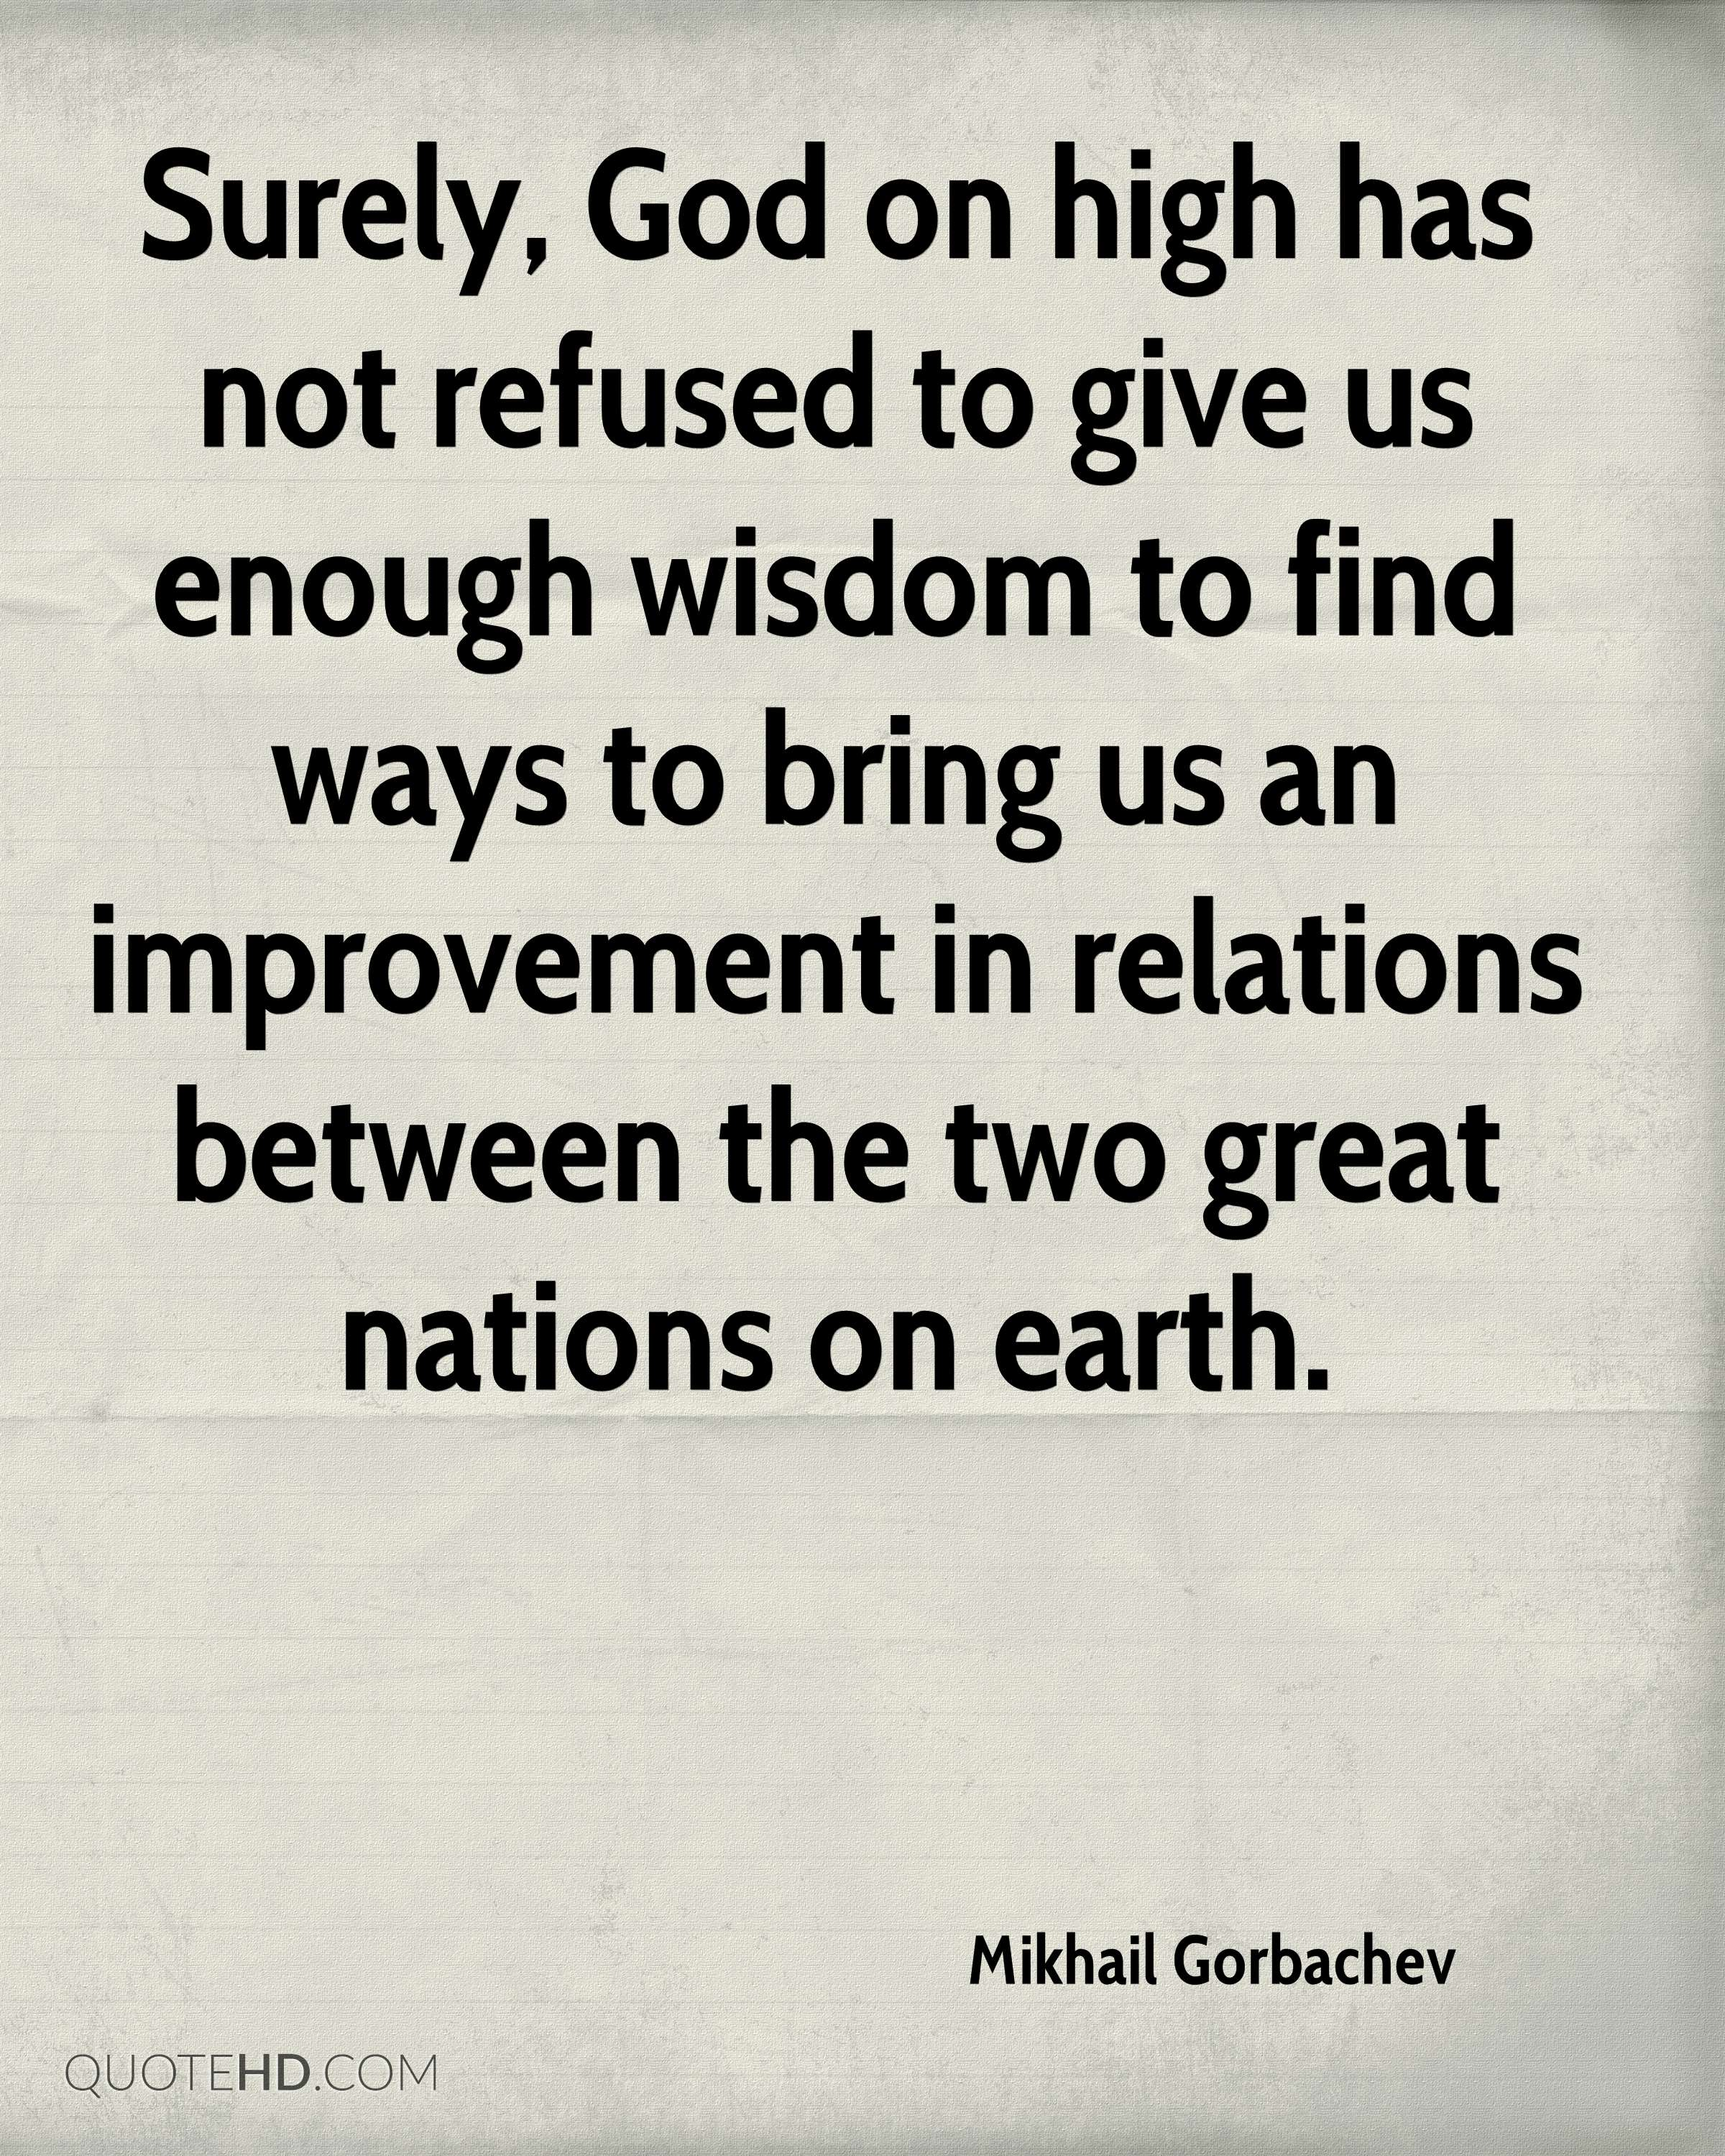 Surely, God on high has not refused to give us enough wisdom to find ways to bring us an improvement in relations between the two great nations on earth.